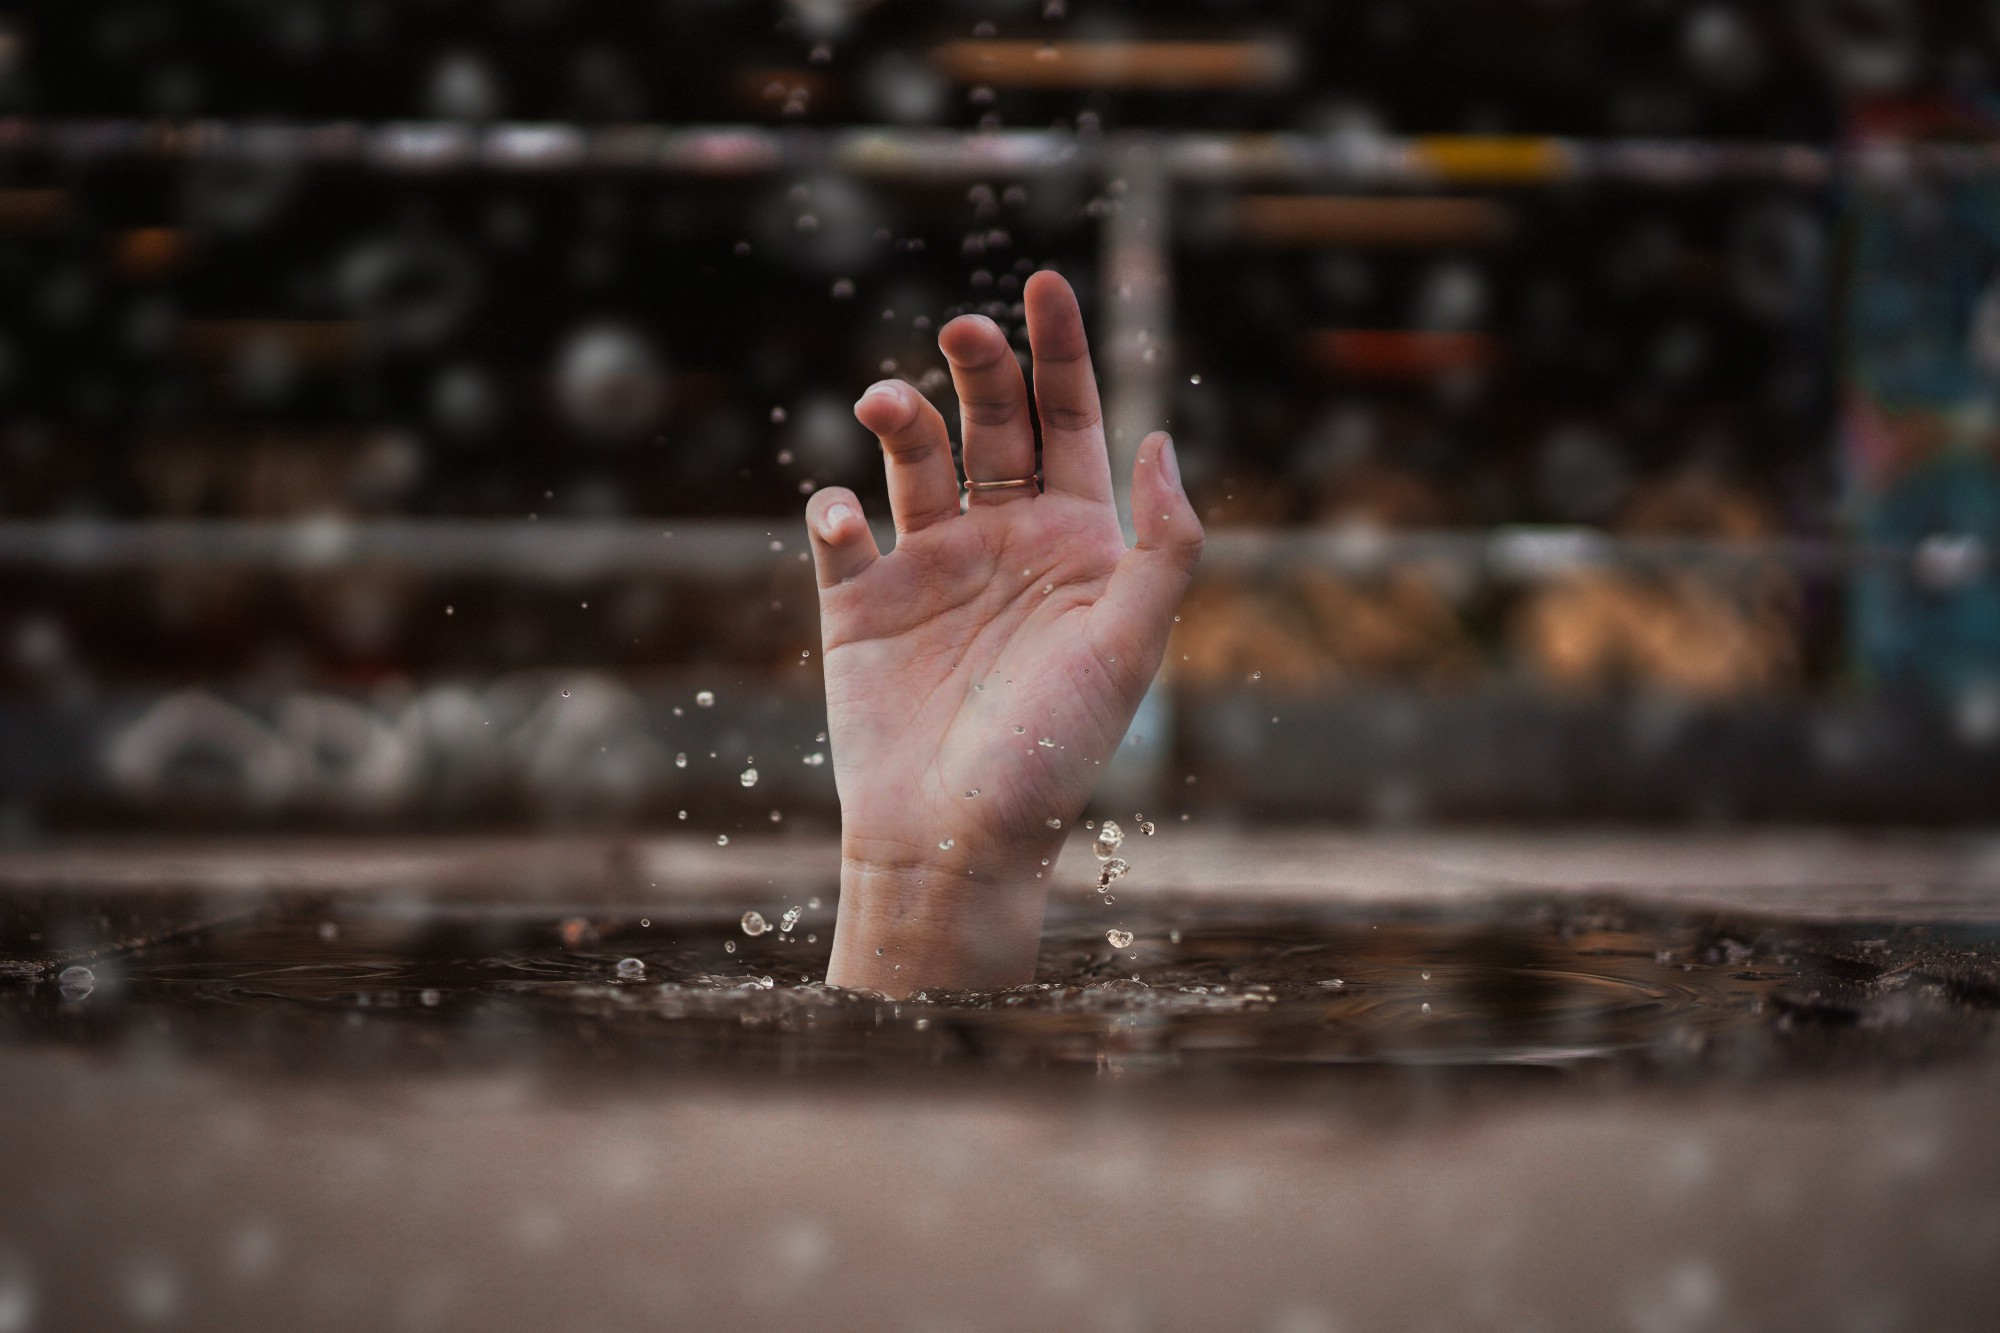 Hand thrusting through water from drowning victim.